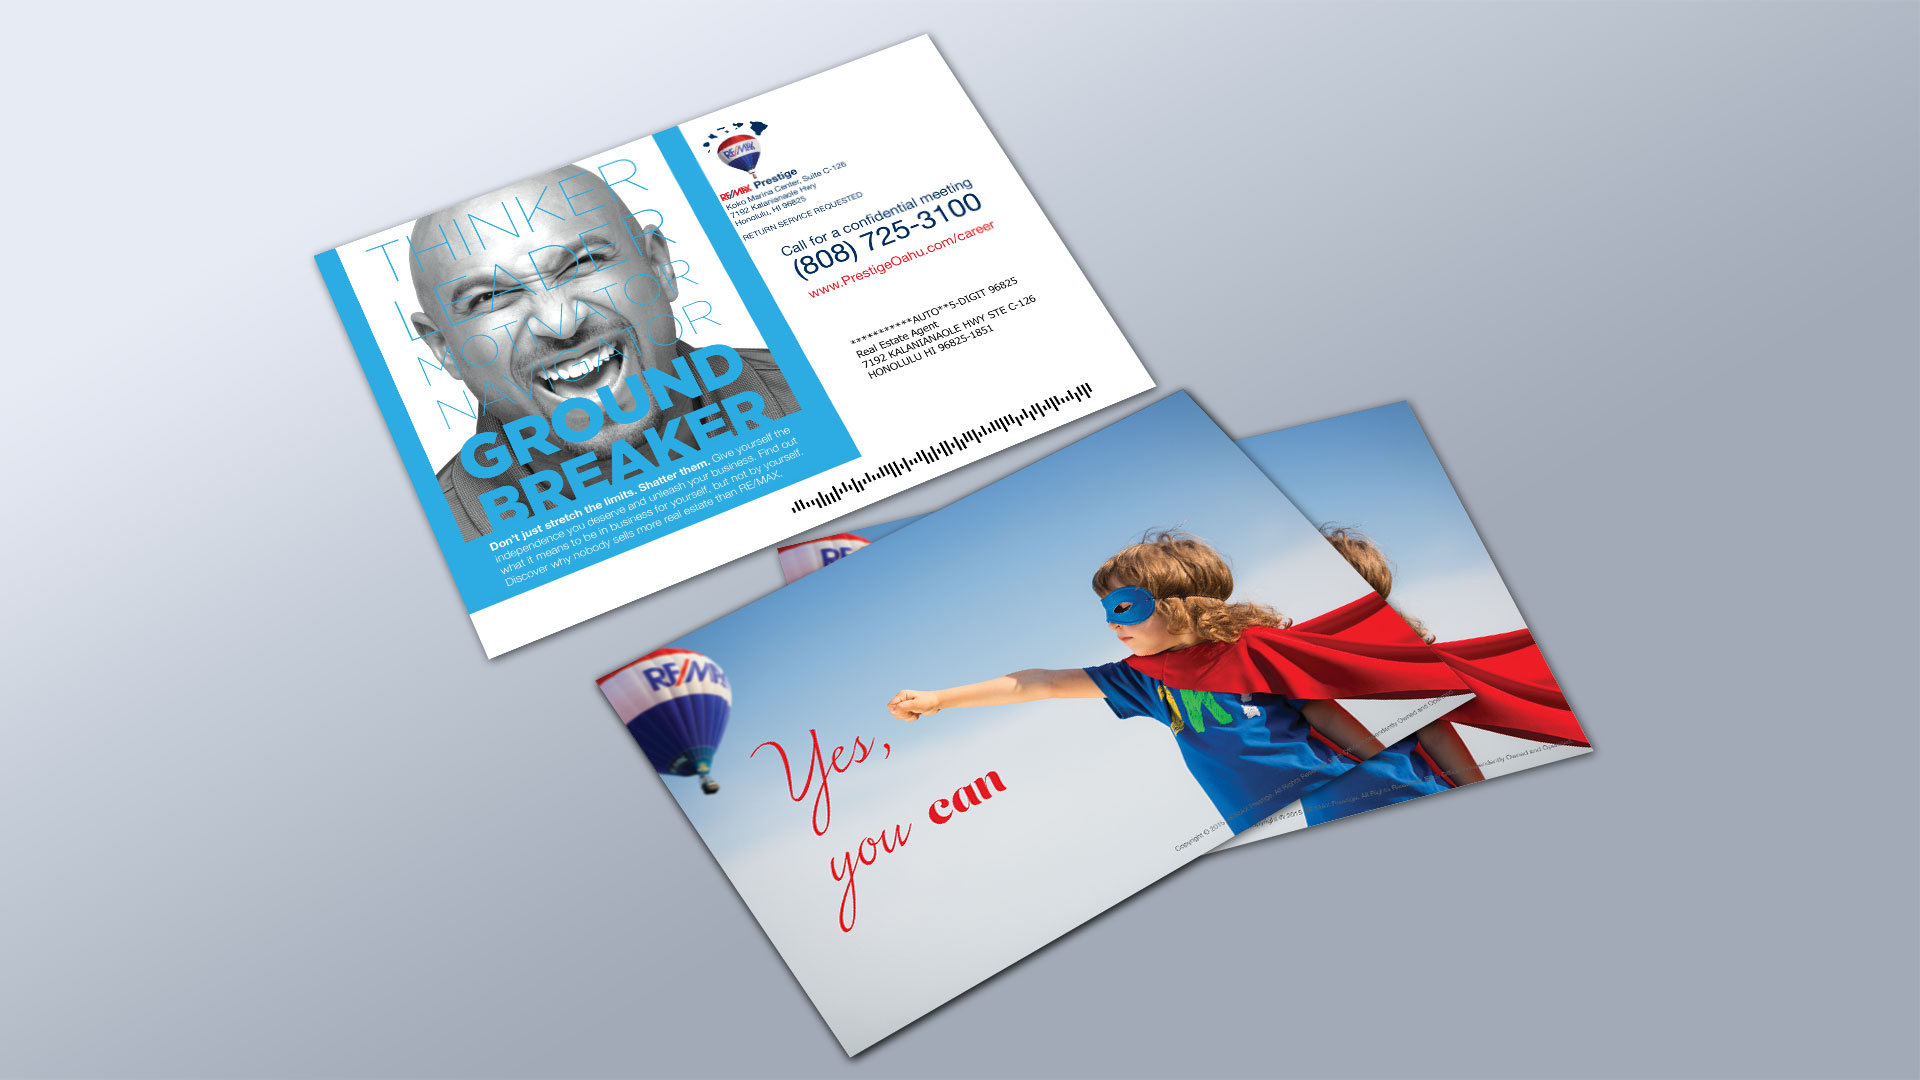 Recruiting-Postcard-Mockup1.jpg